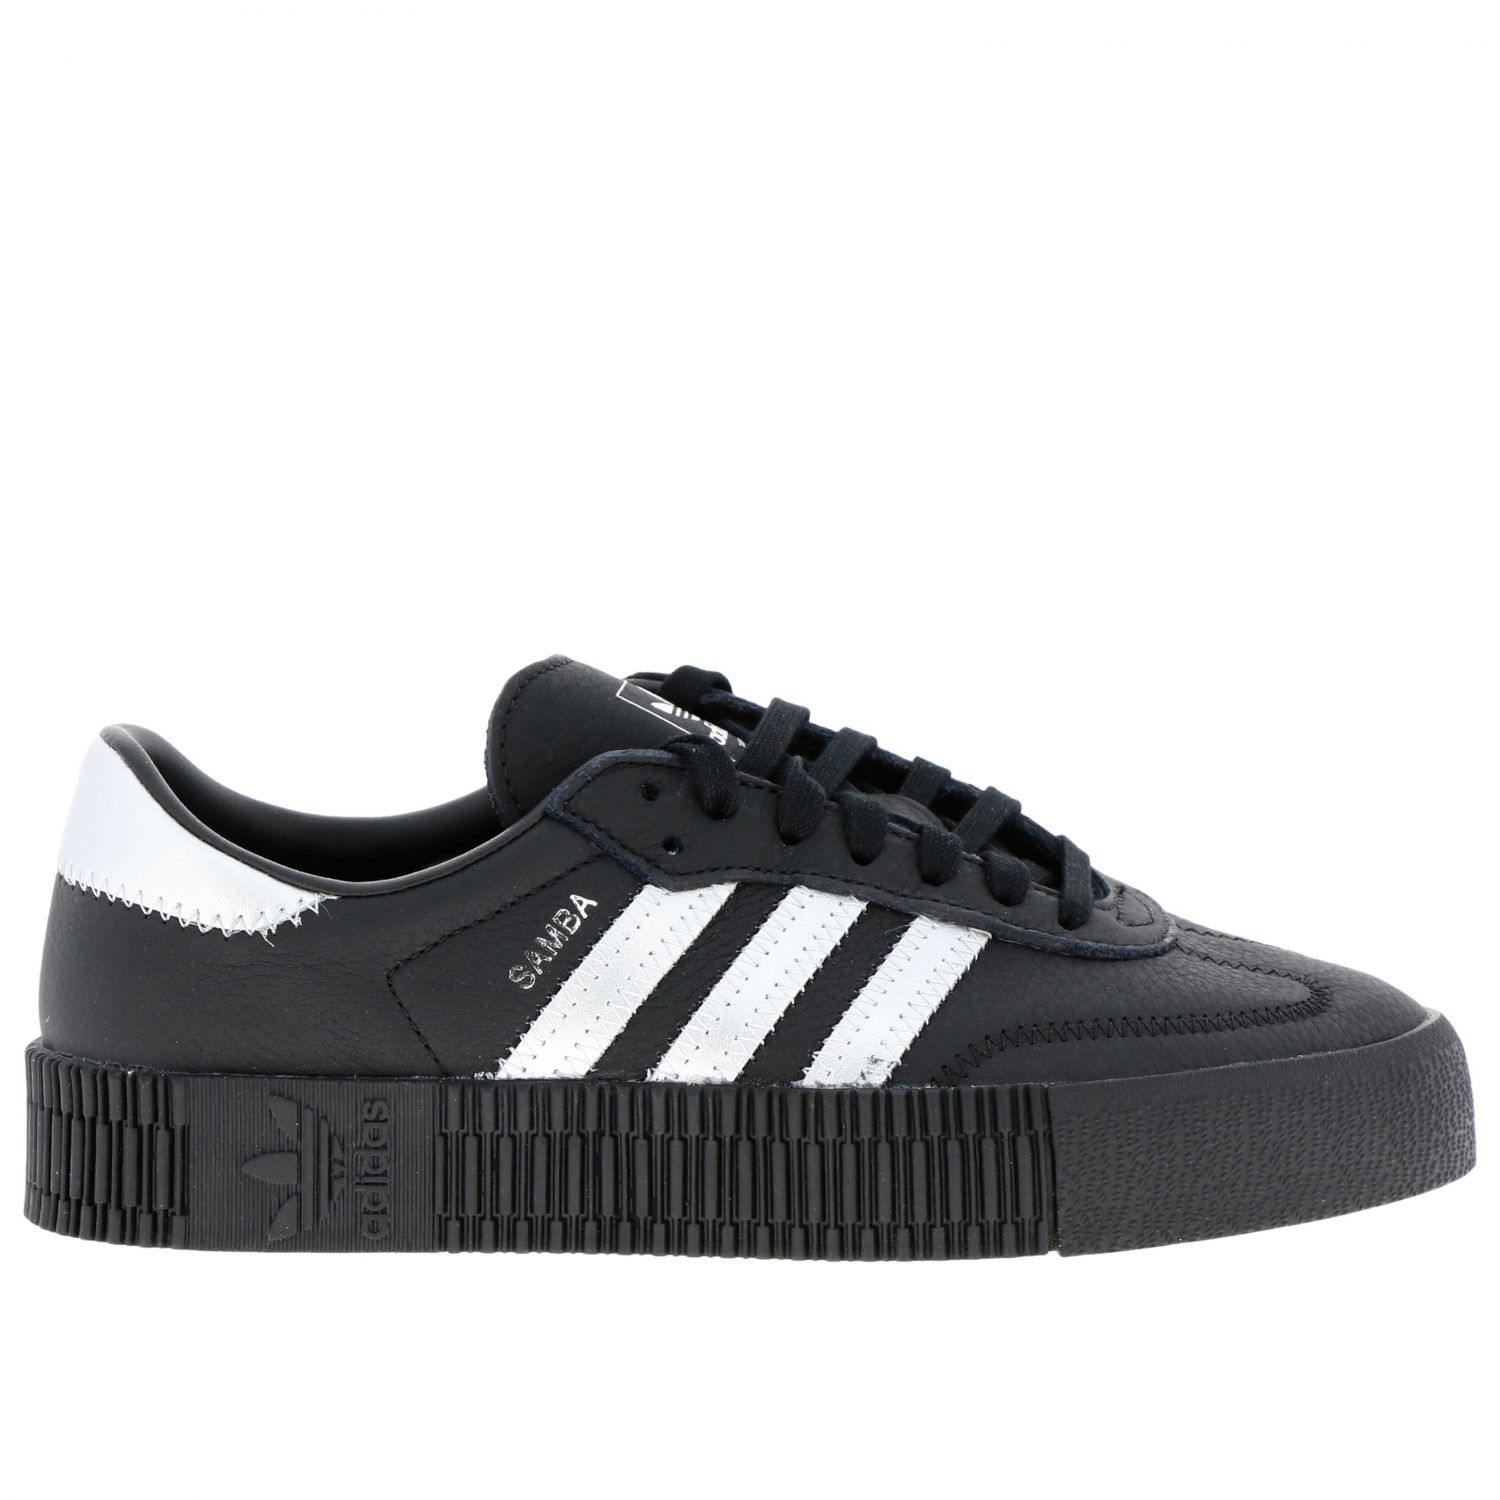 Sneakers Adidas Originals: Adidas Samba Originals By Pharrell Williams sneakers in smooth and laminated leather black 1